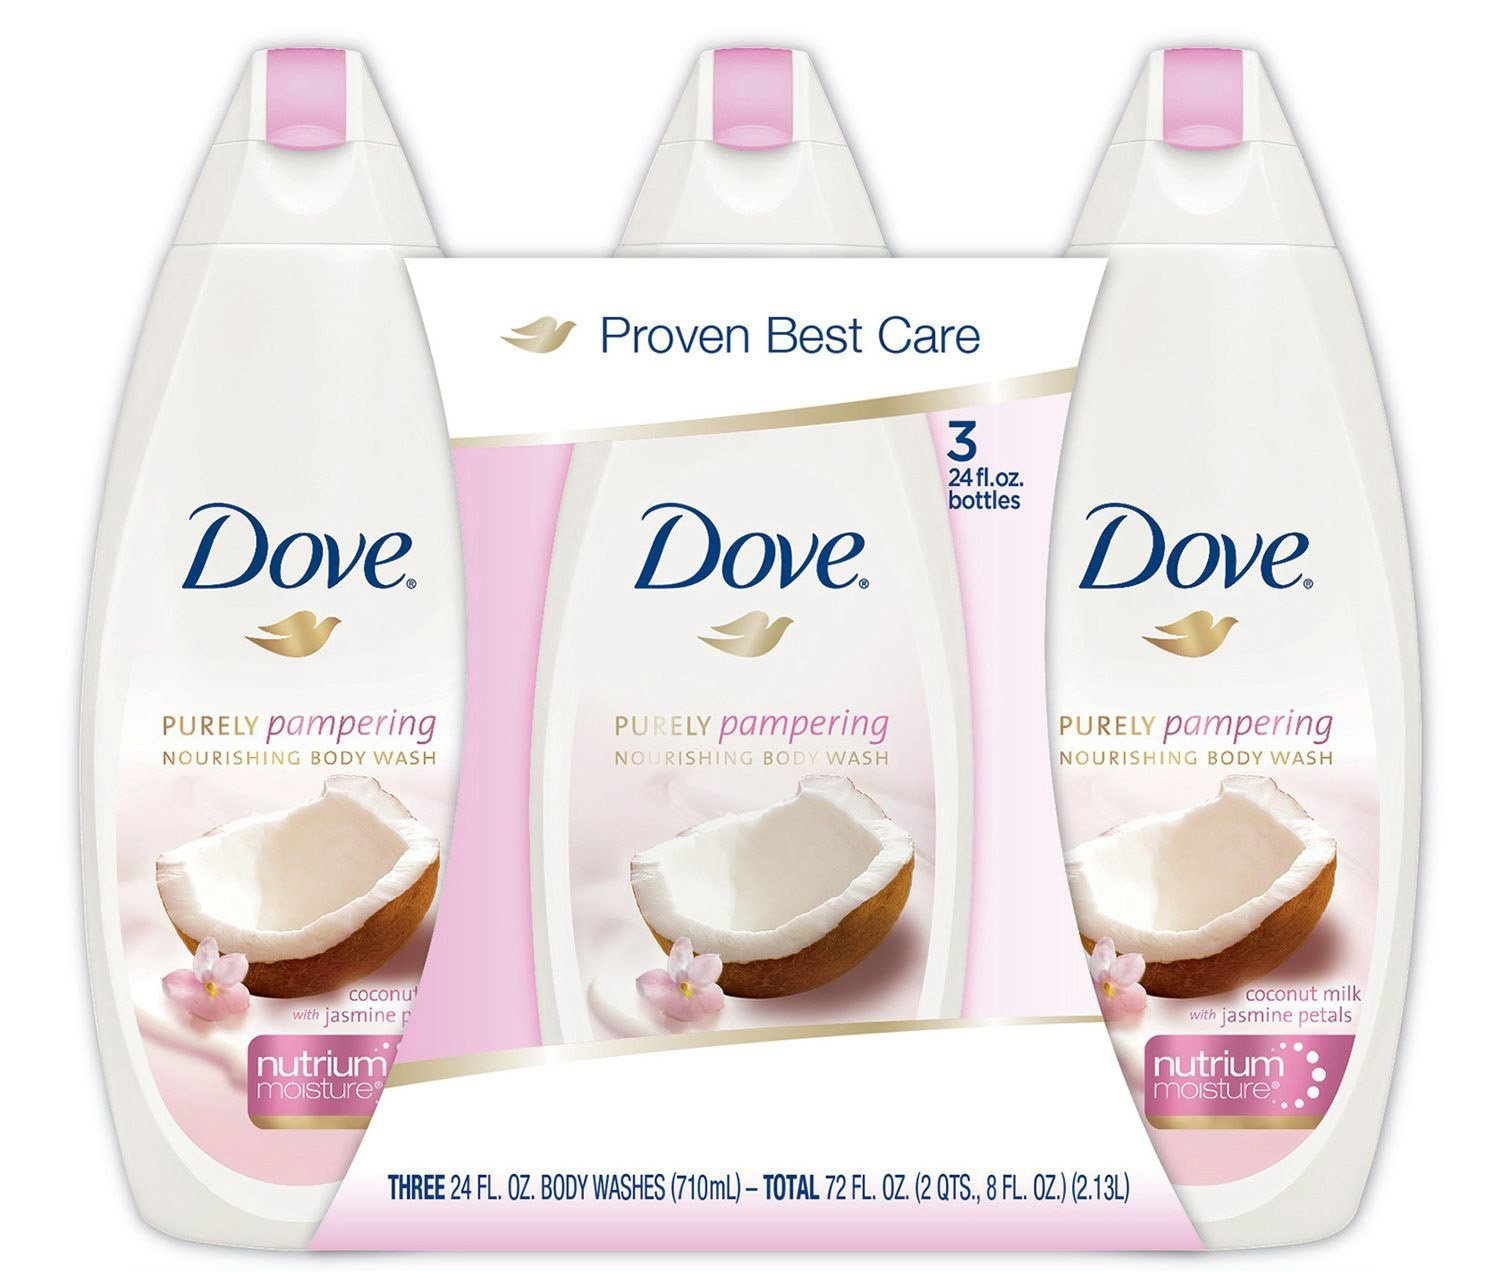 Dove Purely Pampering Body Wash Coconut Milk 24 Fl Oz 3 Pk Buy Online In Congo Dove Men Care Products In Congo See Prices Reviews And Free Delivery Over 40 000 Fc Desertcart